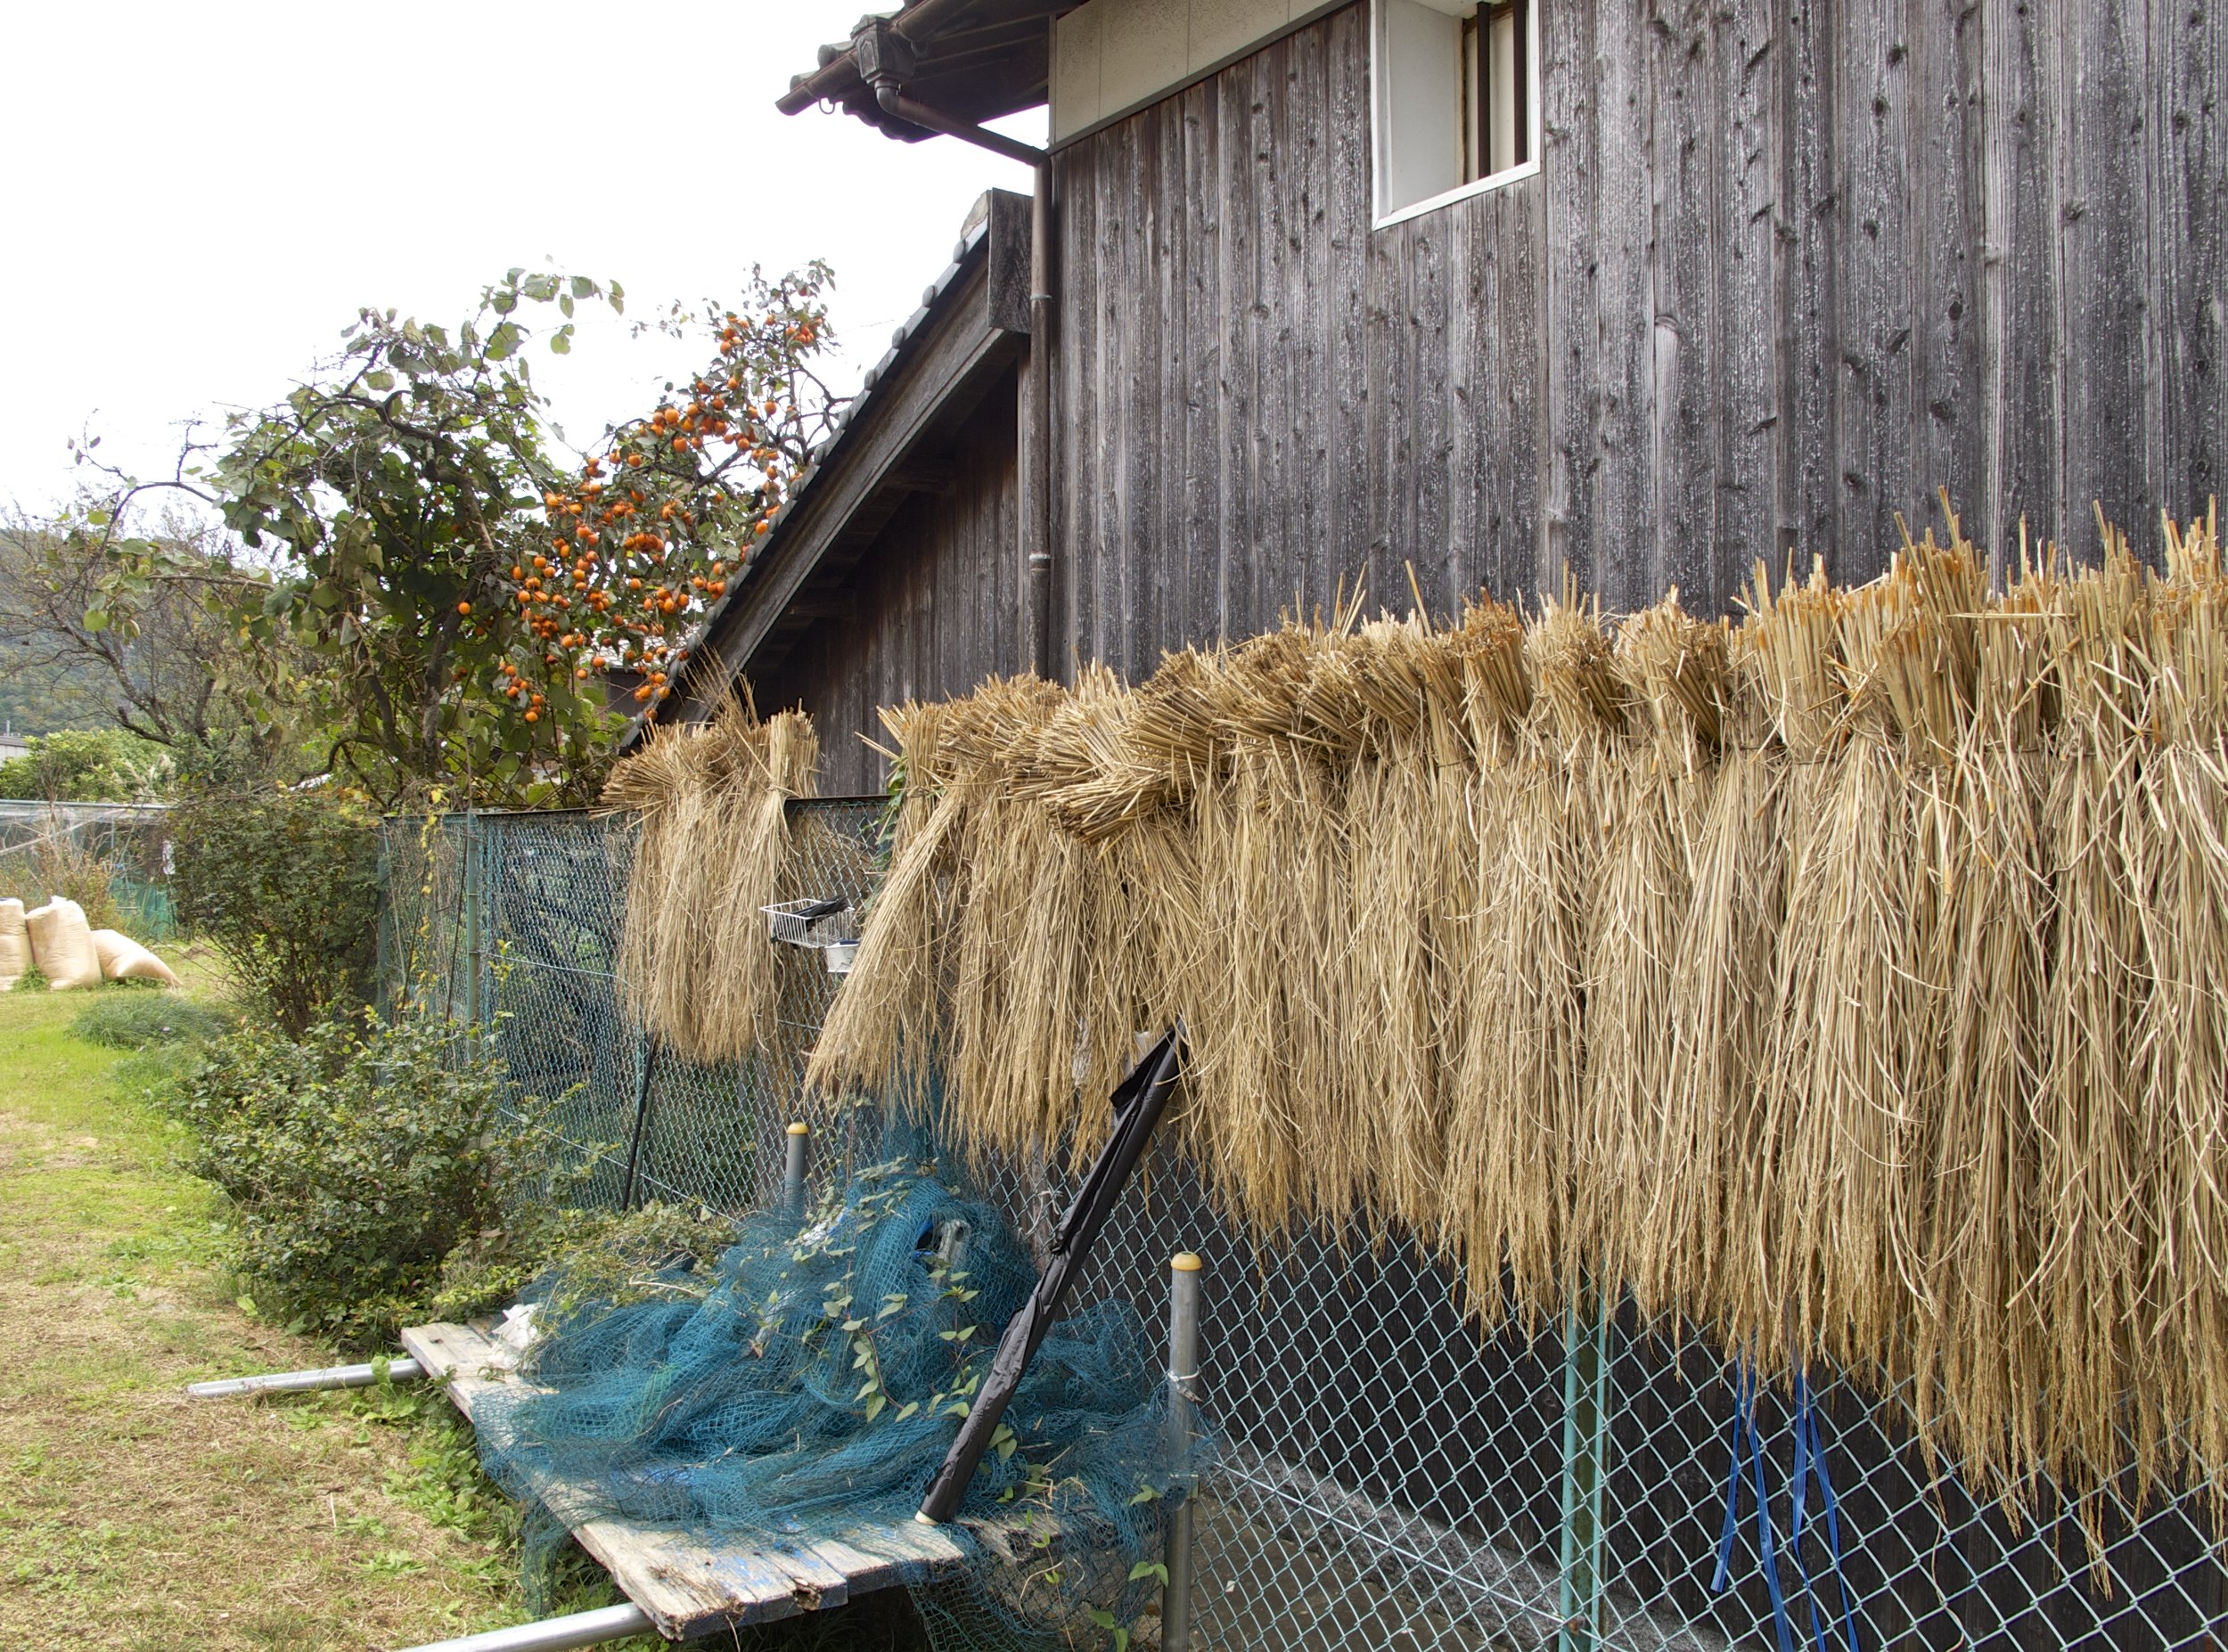 Harvested rice drying outside Iio Jozo's brewery before being made into sake and then fermented again to become rice vinegar.